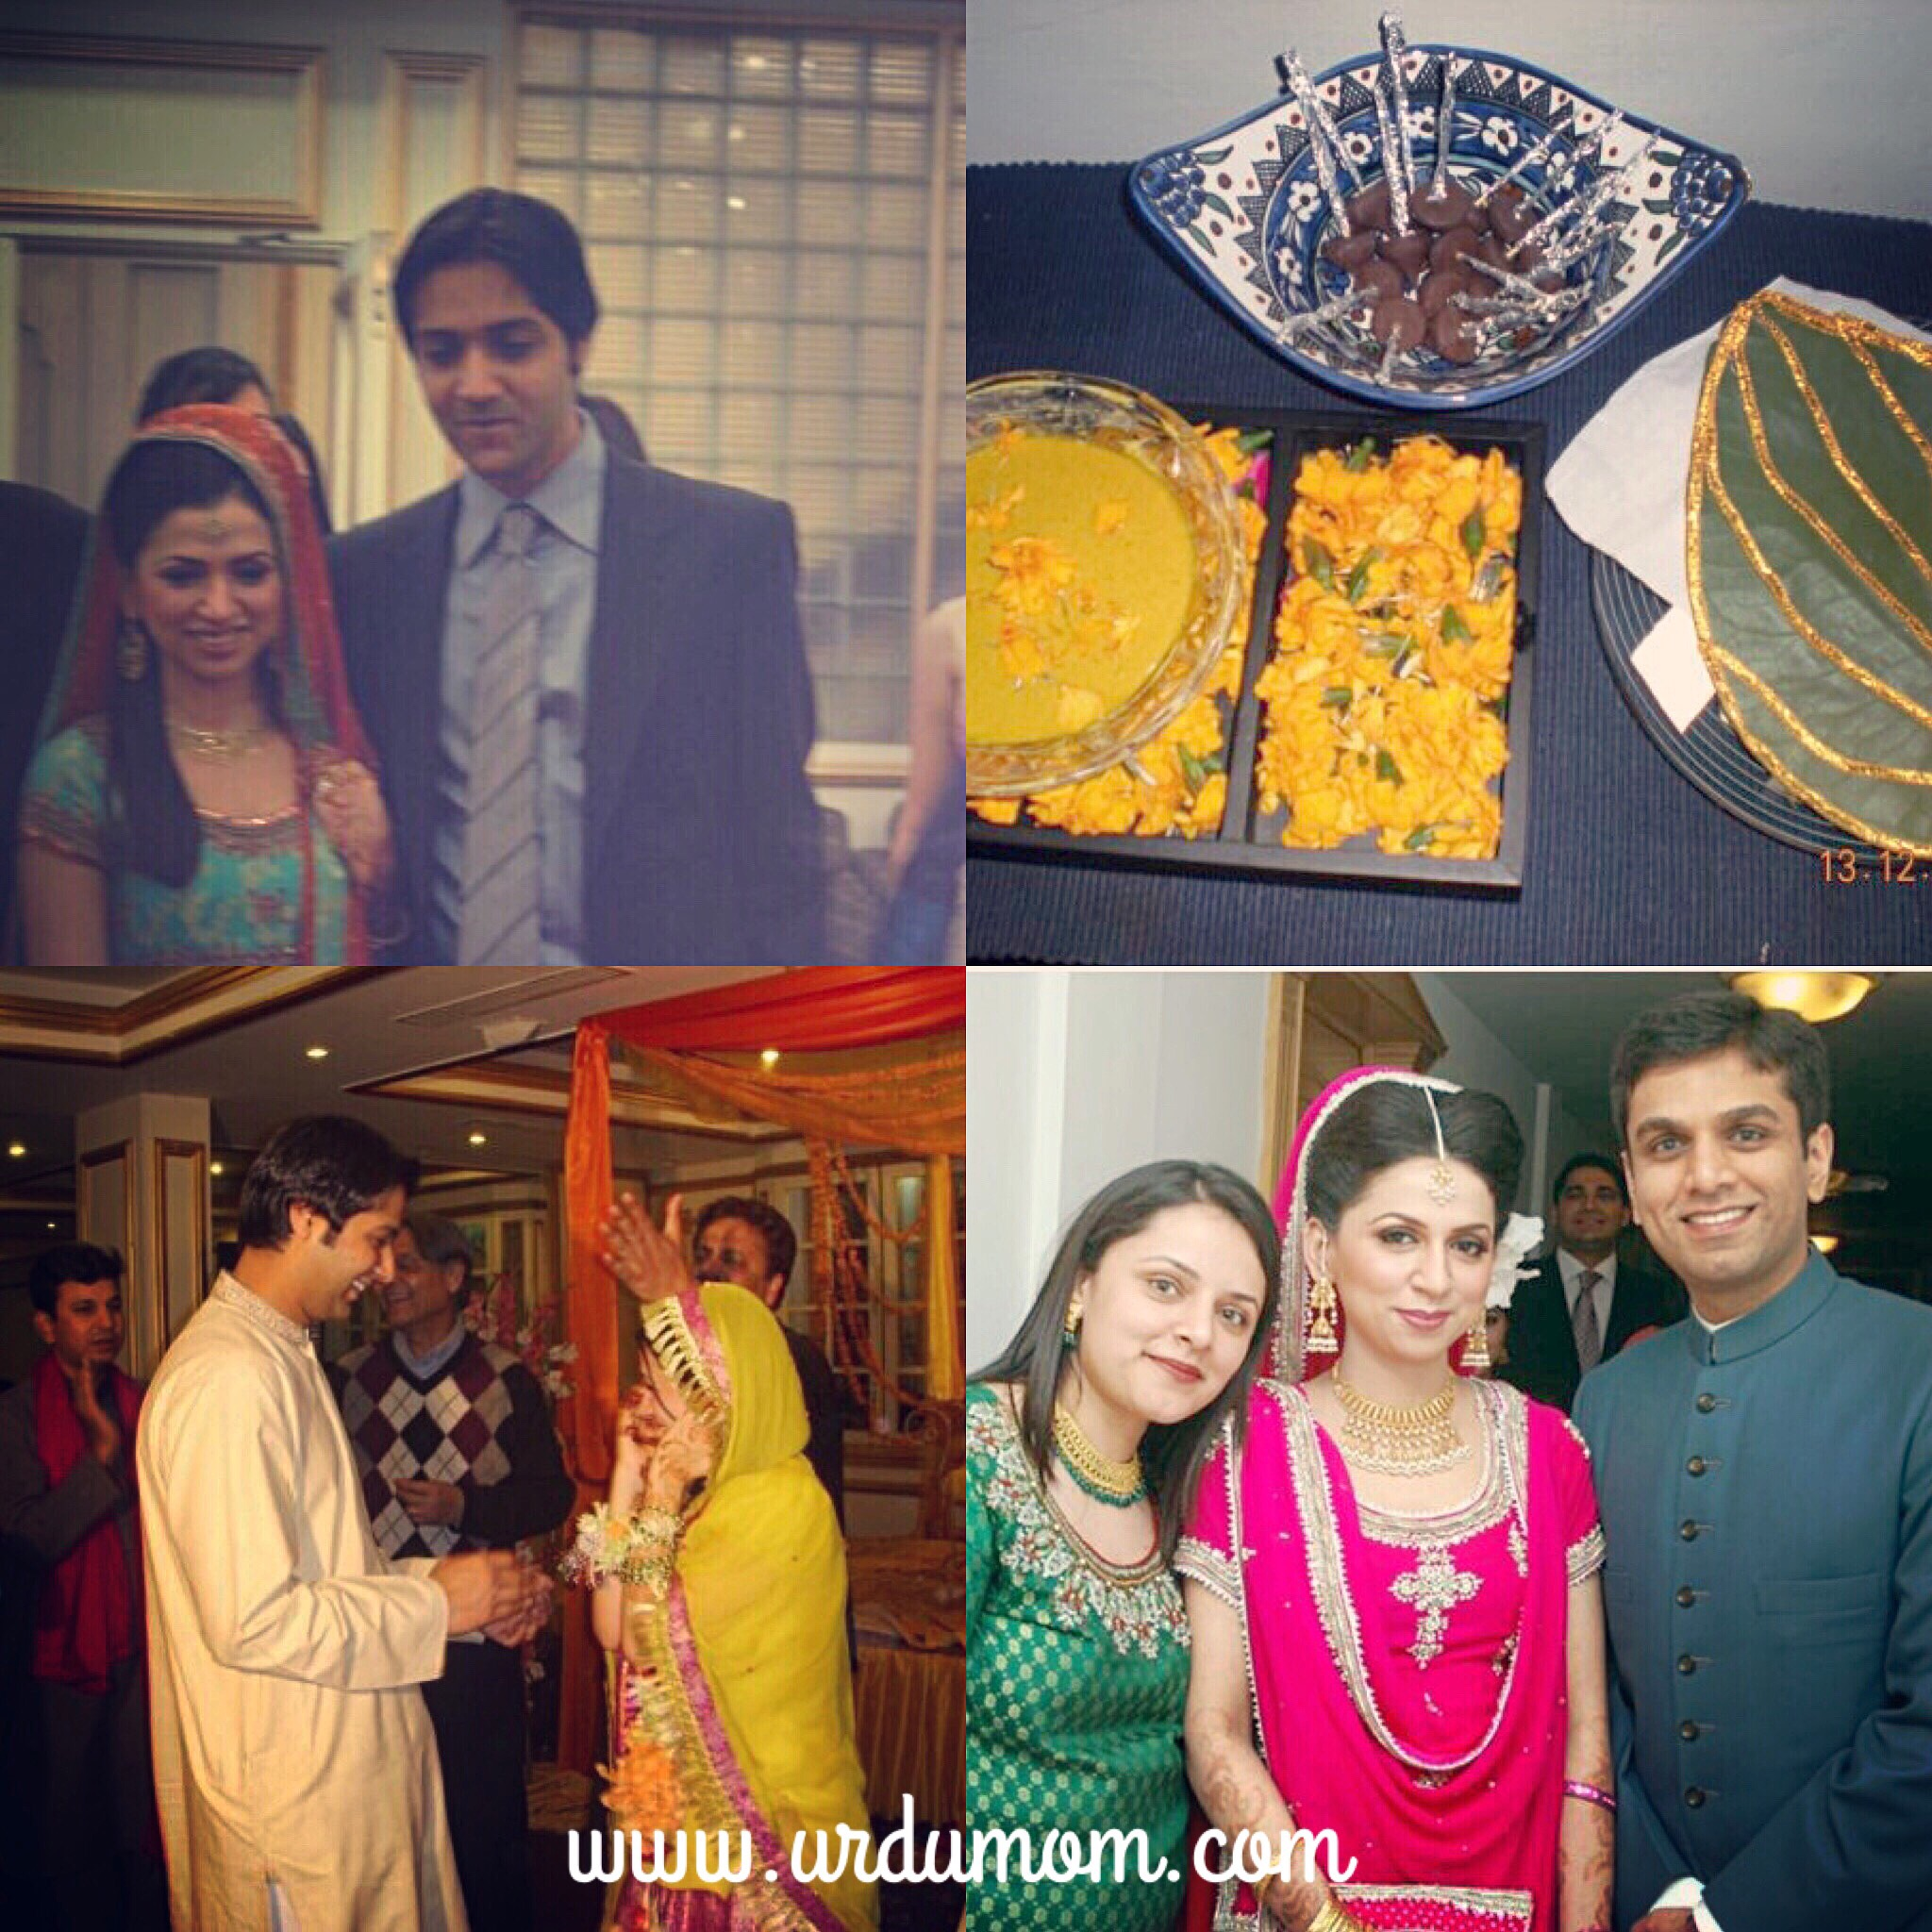 My pakistani wedding